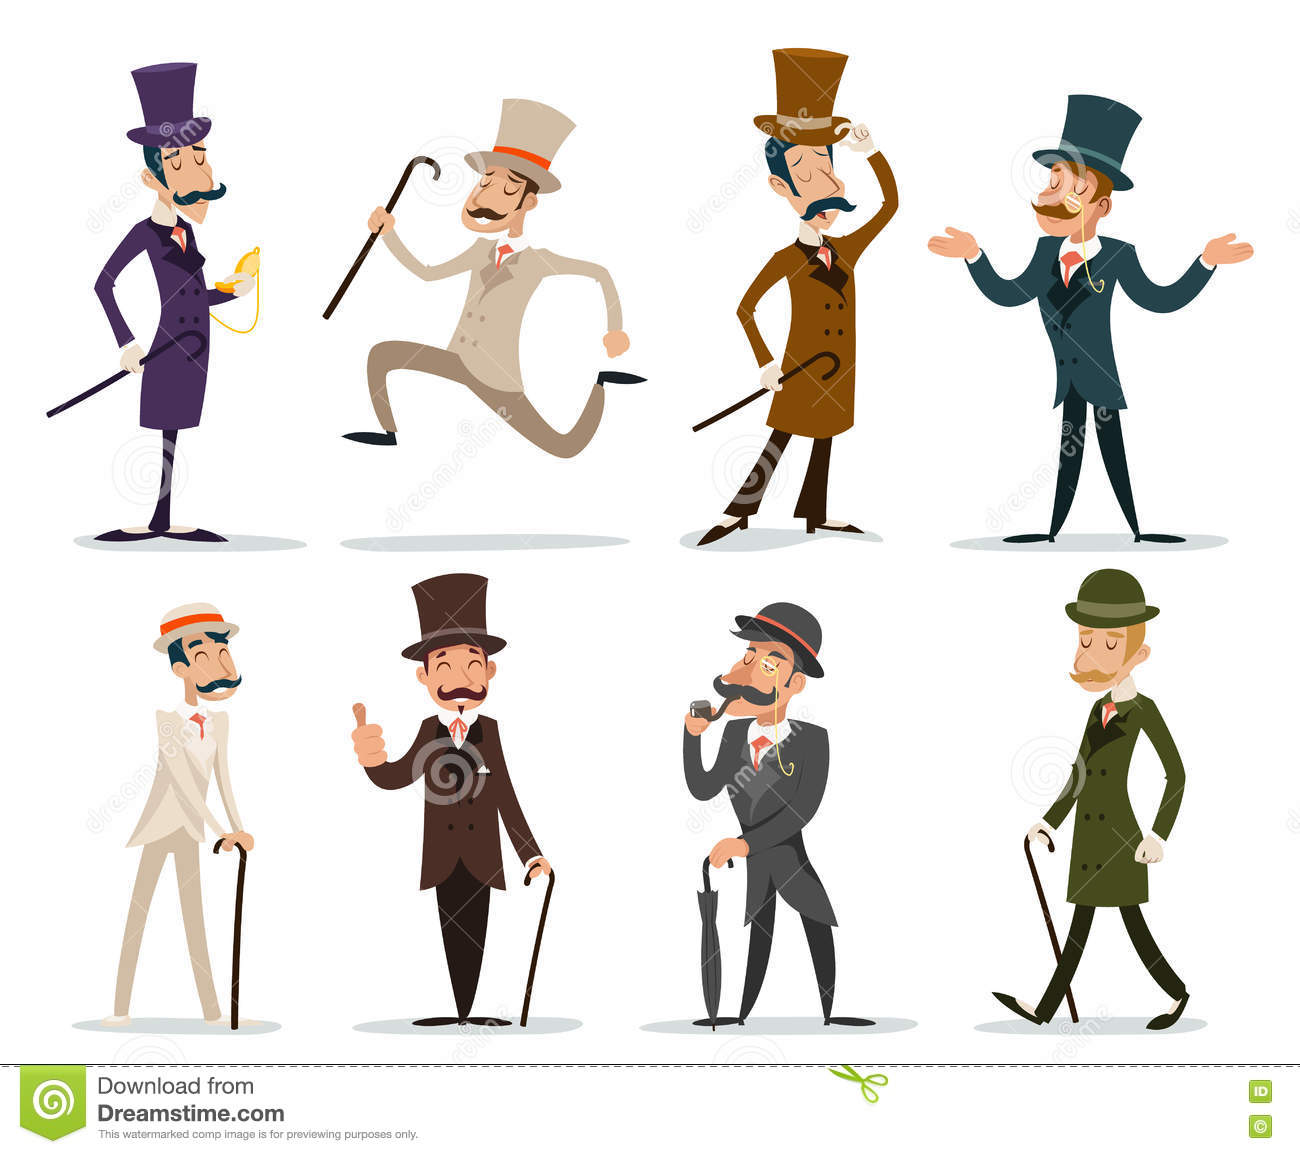 Character Design Illustration : Gentleman victorian business cartoon character icon set